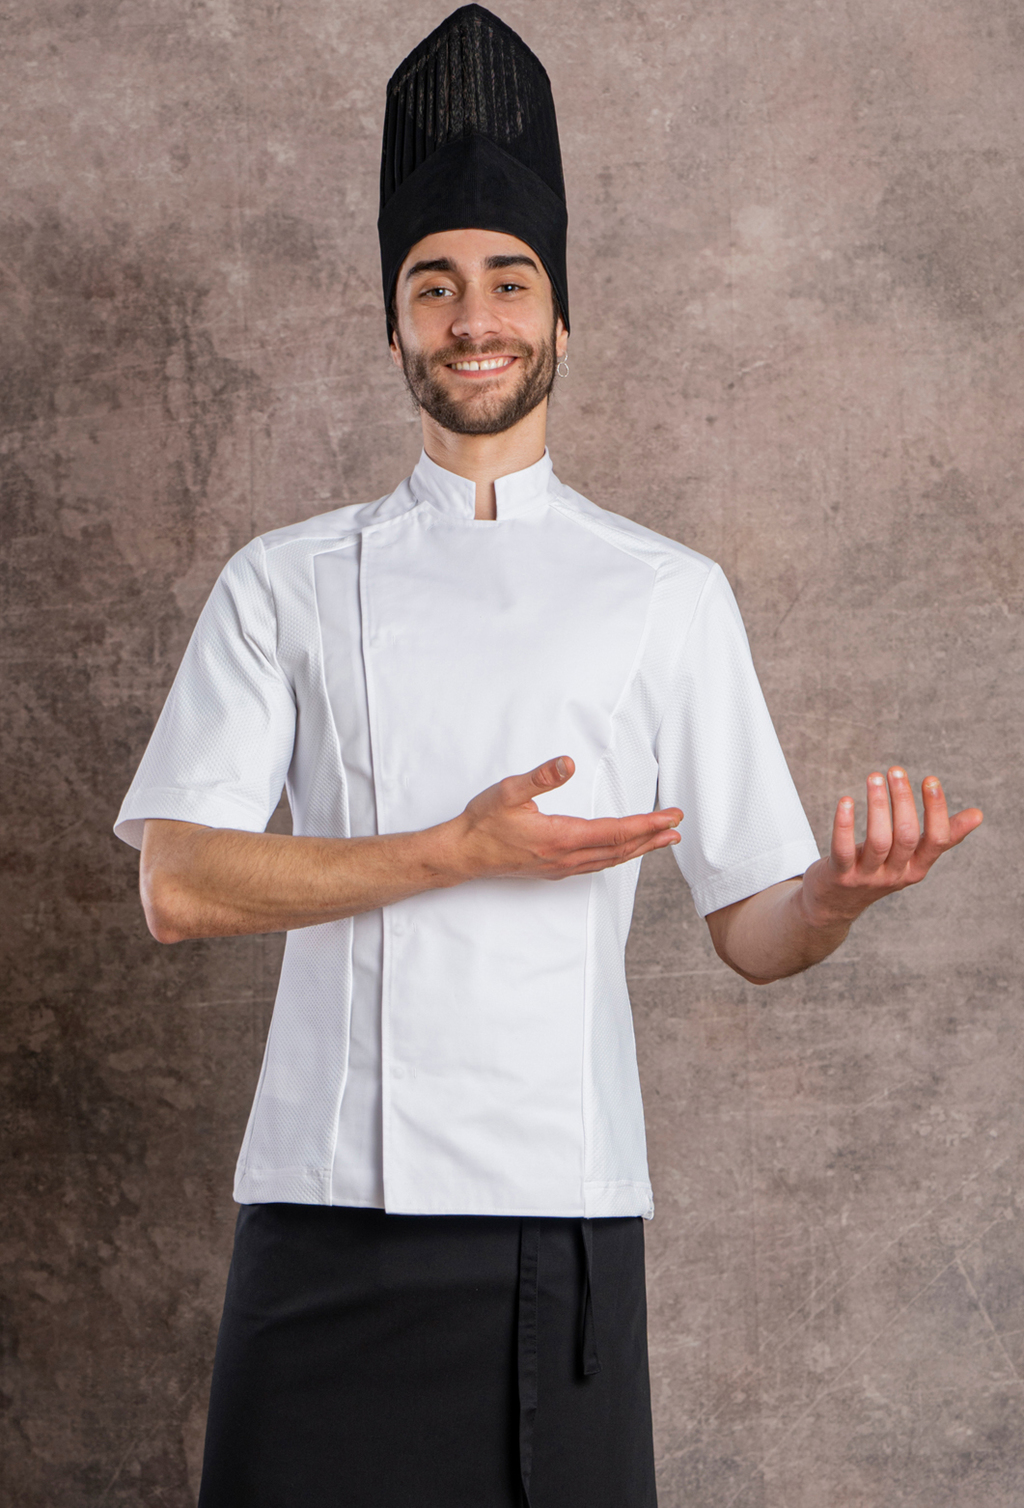 MEN'S CHEF JACKET S/S RECYCLED FABRIC GOFRADO DESIGN